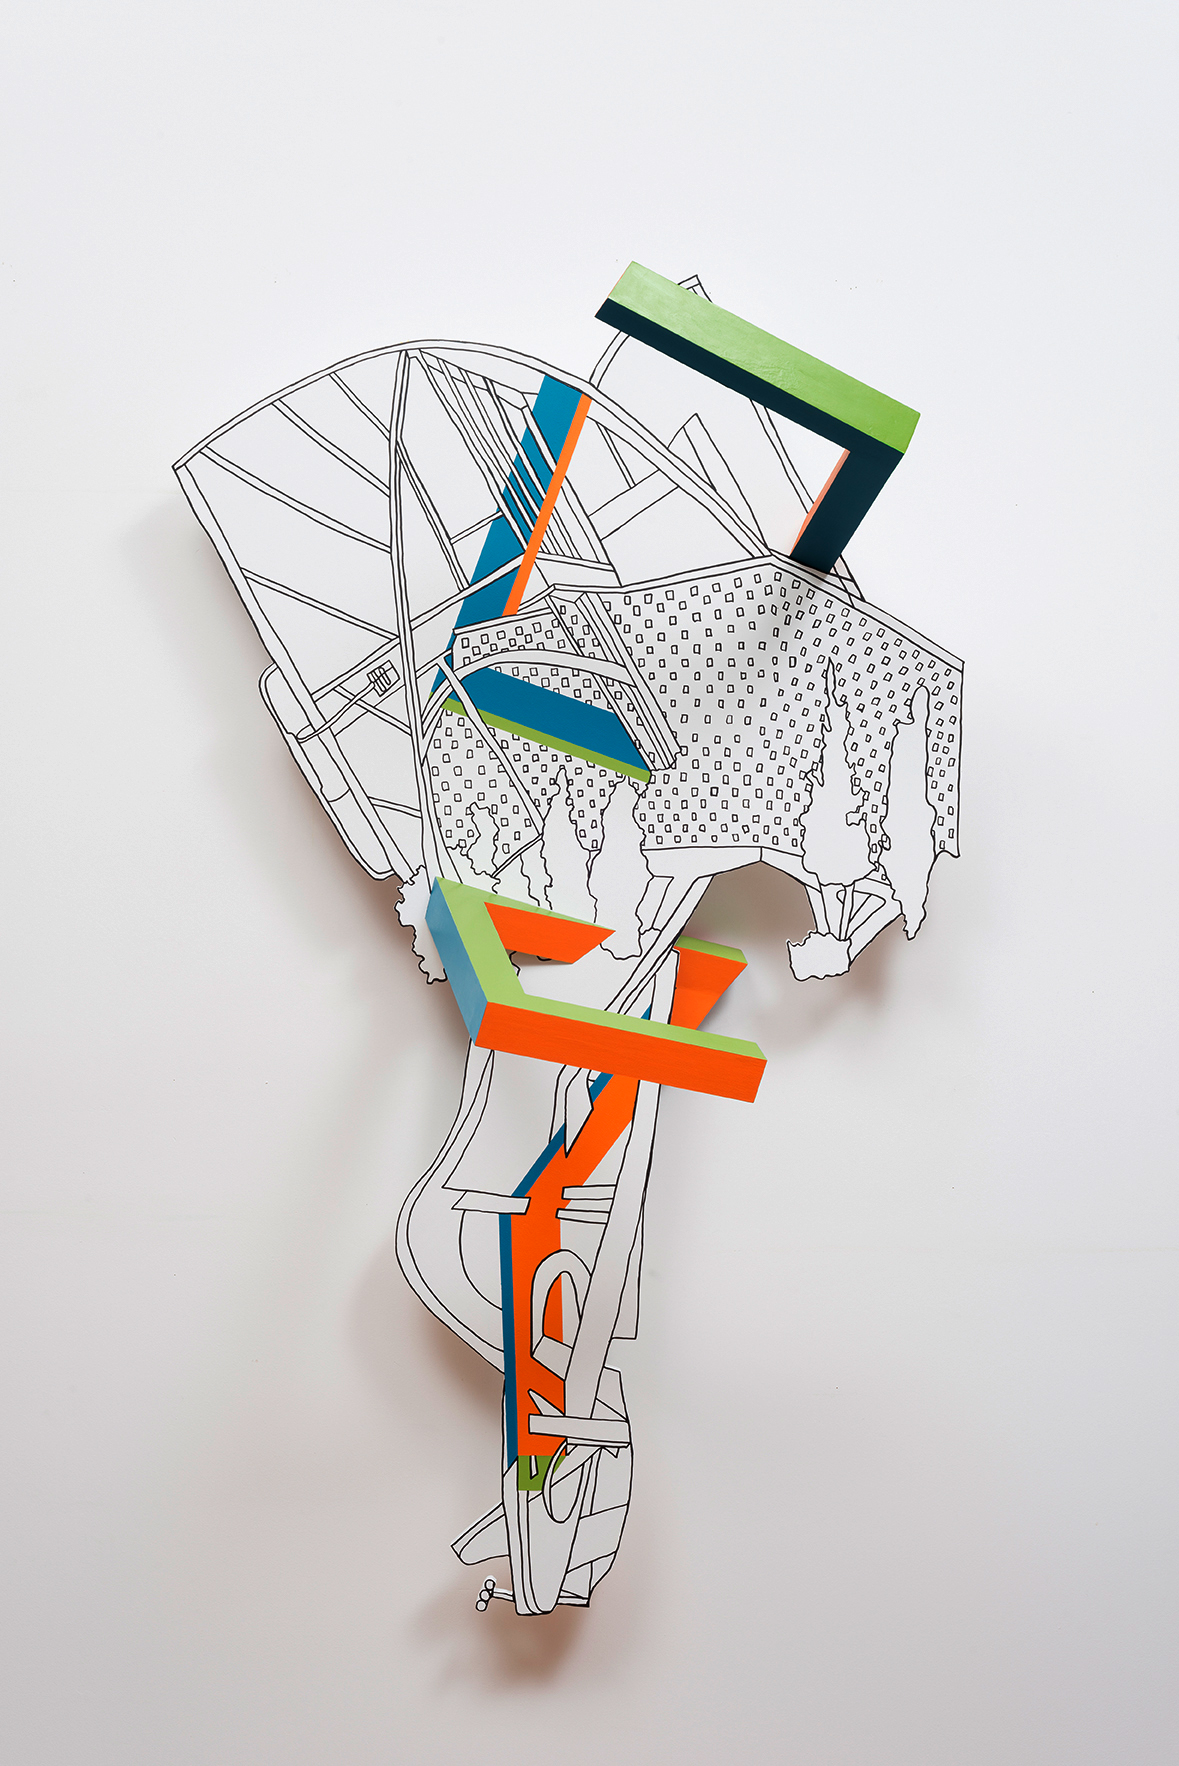 Kim Schoenstadt  Block Plan Series: USA/Brazil combination 1 , 2015 Pen and paint on wood with dimensional objects 143.5 x 88.9 x 44.5 cm 56 1/2 x 35 x 17 1/2 in Photo: © Kim Schoenstadt Courtesy of Chimento Contemporary